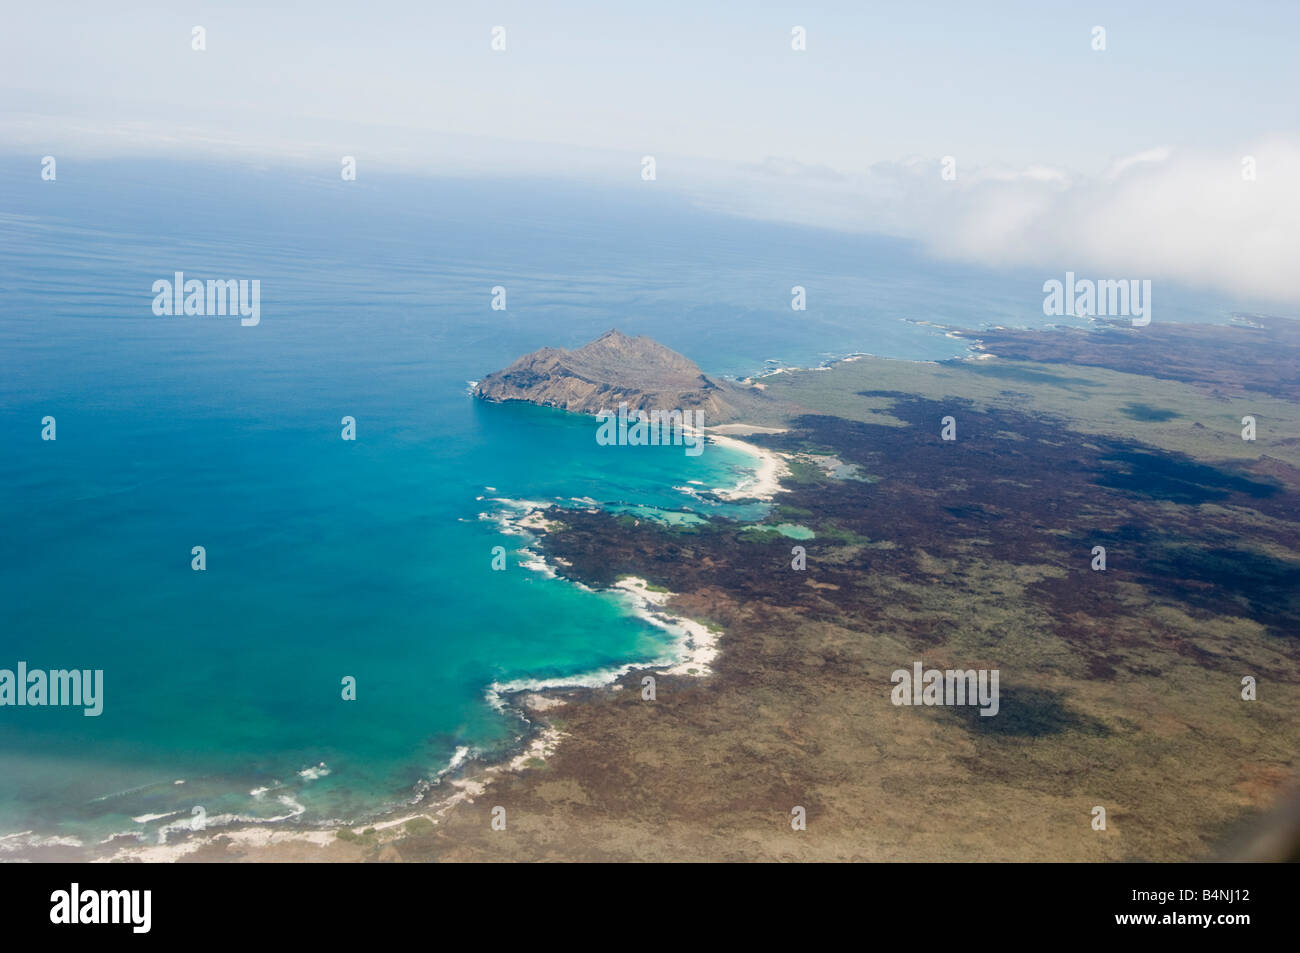 fly flying over overfly overflying Ecuador Equador coast sea water waves landscape aerial rain forest Overview birds - Stock Image